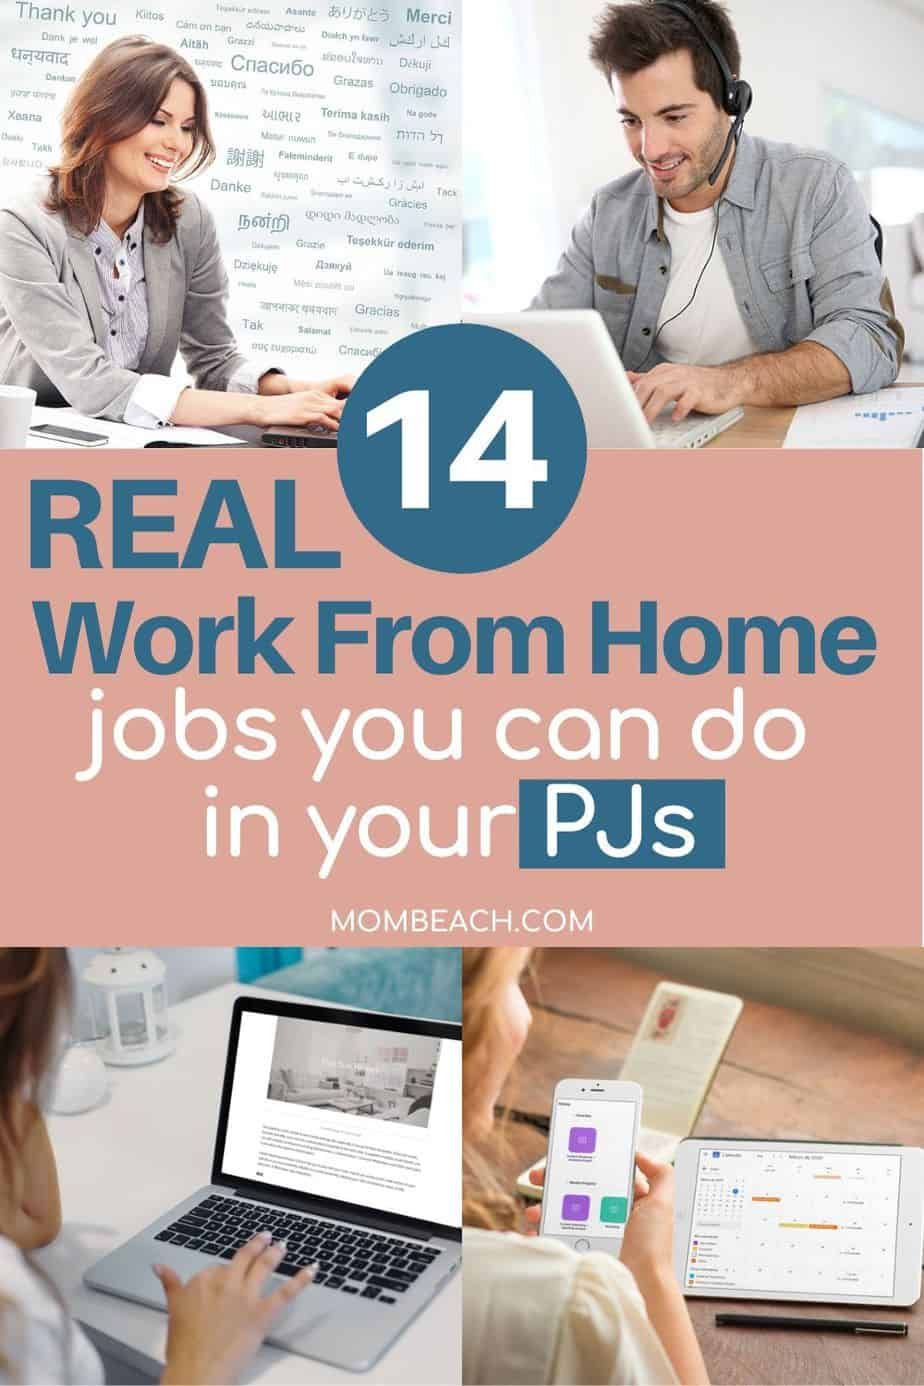 Do you want to work in your PJs all day? These 14 real work from home jobs are perfect for stay at home moms and everyone else. You can make money from home with little to no experience. These remote jobs are great for beginners and are legitimate. You can work part time if you choose. Some of these online jobs have benefits too. #workfromhomejobs #realworkfromhomejobs #legitimateworkfromhomejobs #stayathomemomjobs #onlinejobsfromhome #remotejobs #onlinejobs